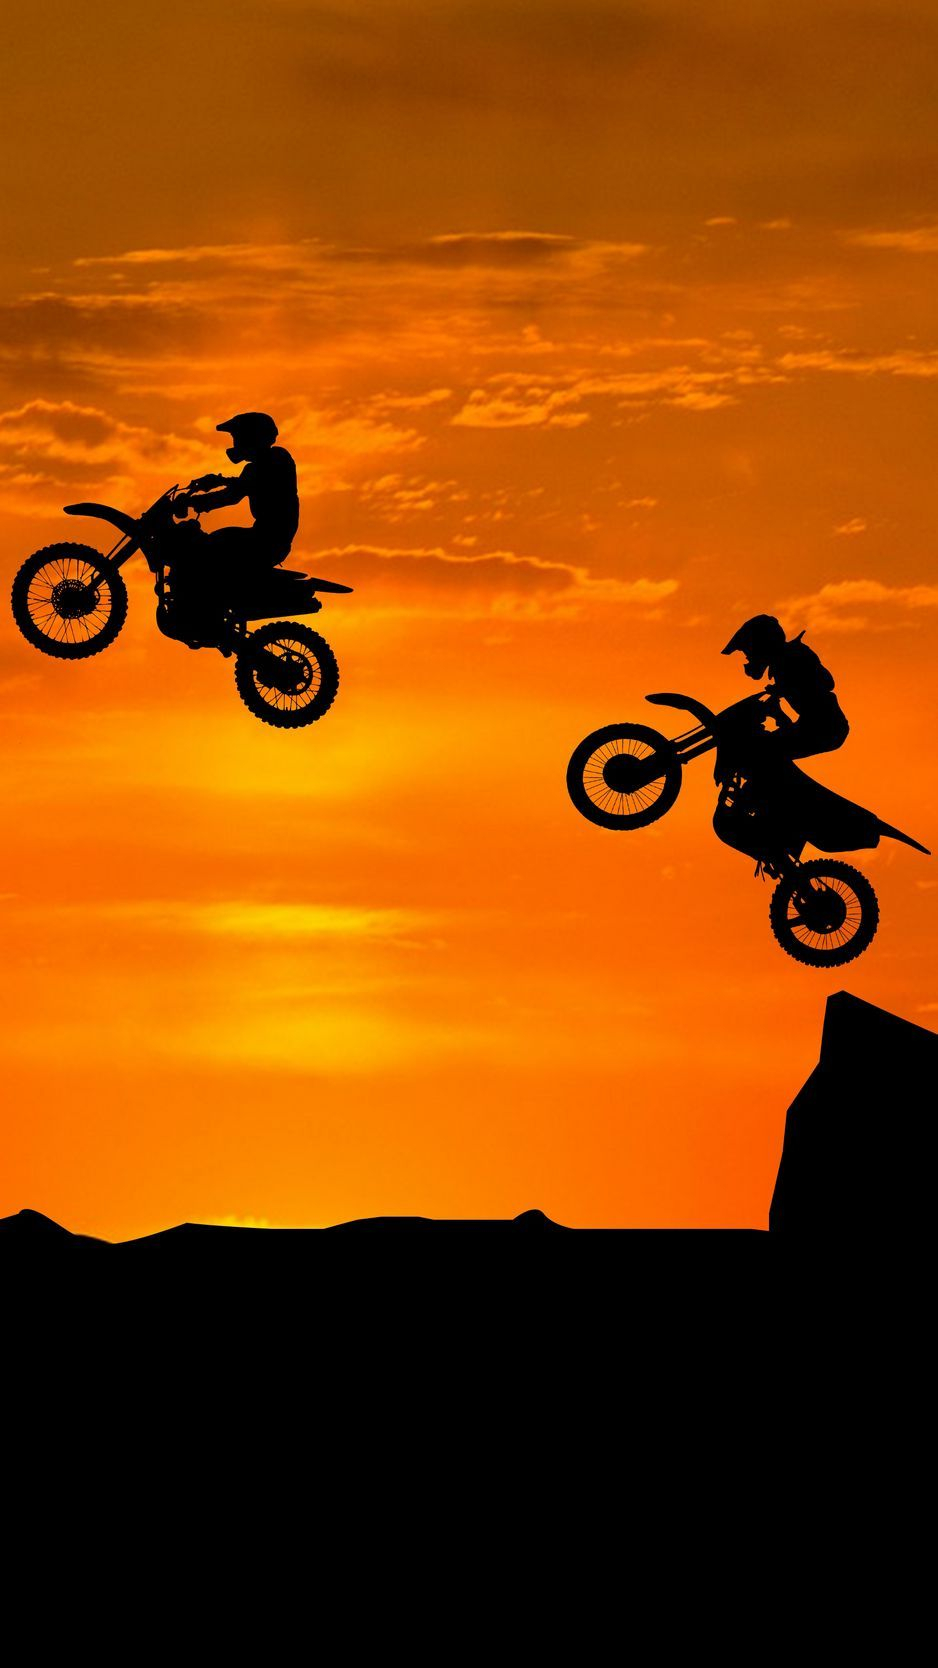 Download wallpaper 938x1668 motorcyclist silhouettes trick hill iphone 8 7 6s 6 for parallax hd background